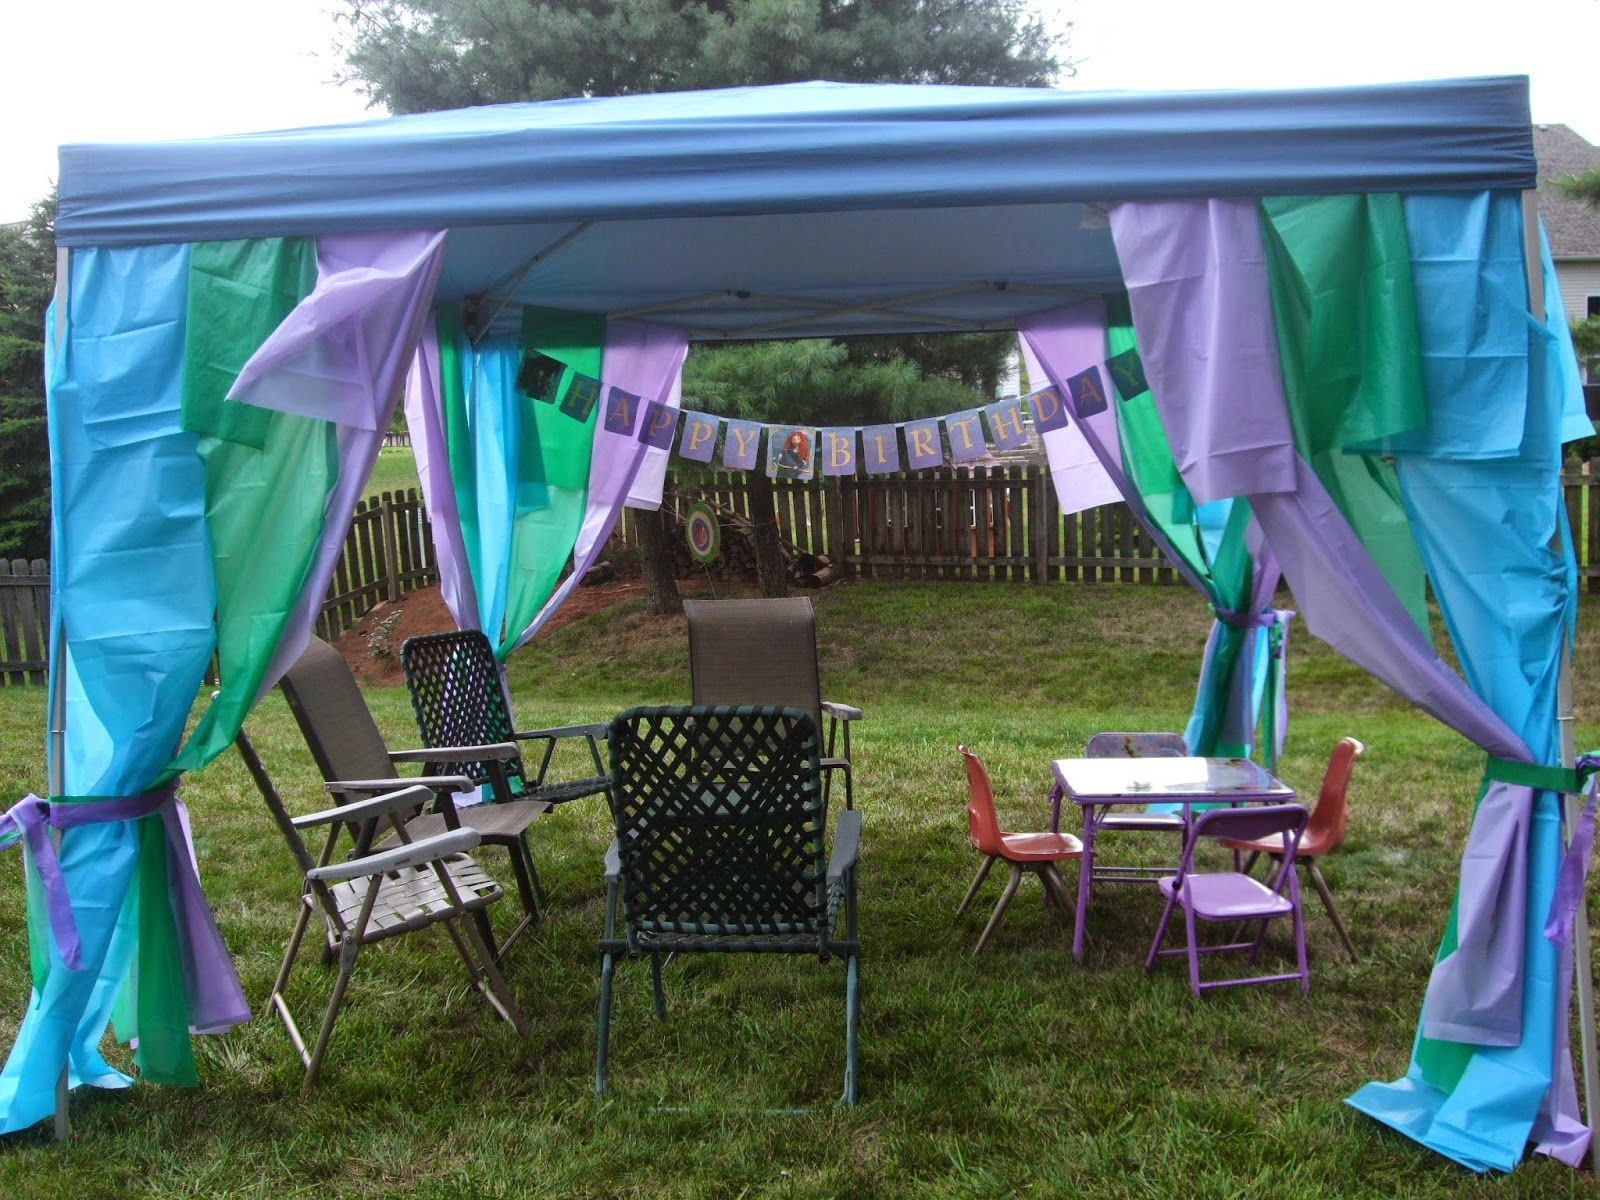 backyard pop-up tent decorated with strips of plastic tablecloths